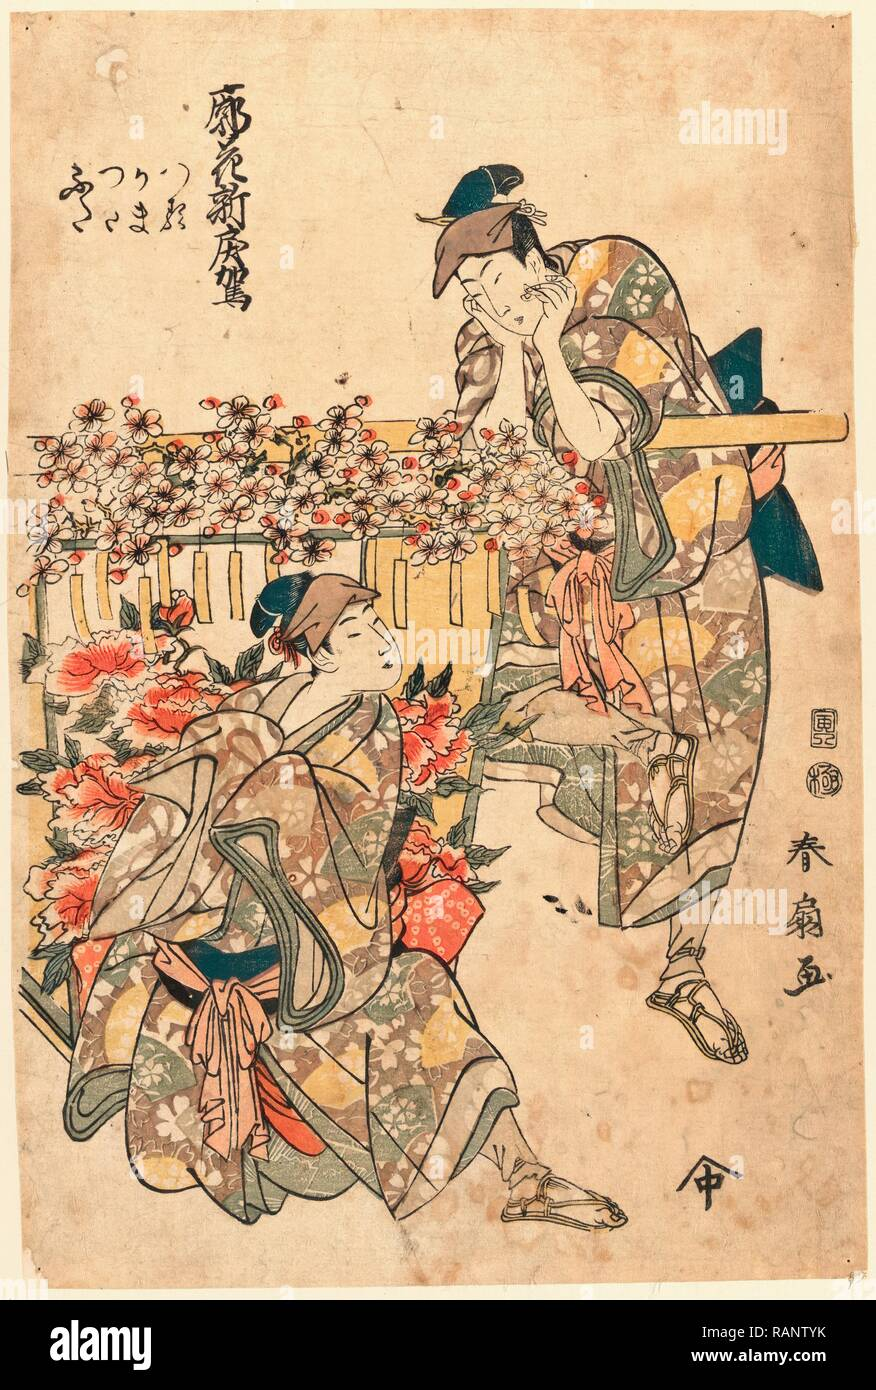 Kuruwa No Hana Shin Modorikago, Flower Cart for a New Modorikago Dance. 1806., 1 Print: Woodcut, Color, 34.5 X 22.8 reimagined - Stock Image